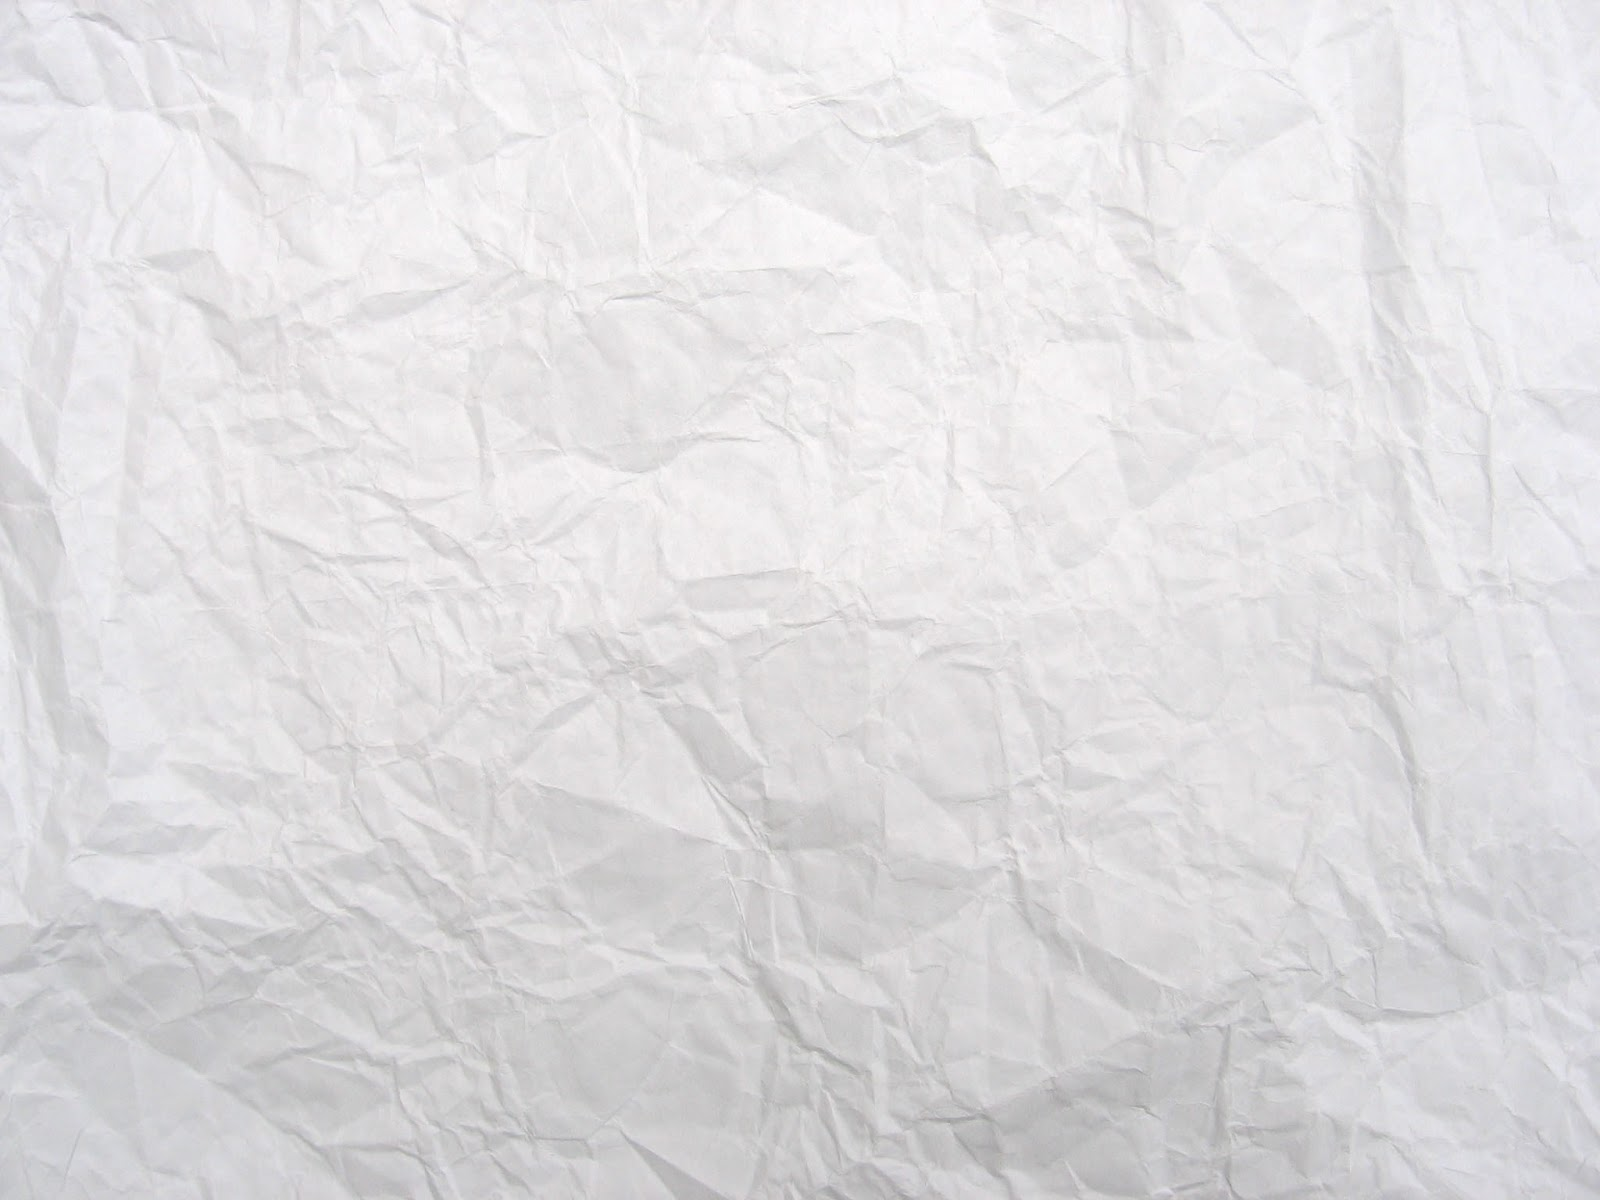 Free Download Wallpaper: Crumpled White Paper Texture HD ...